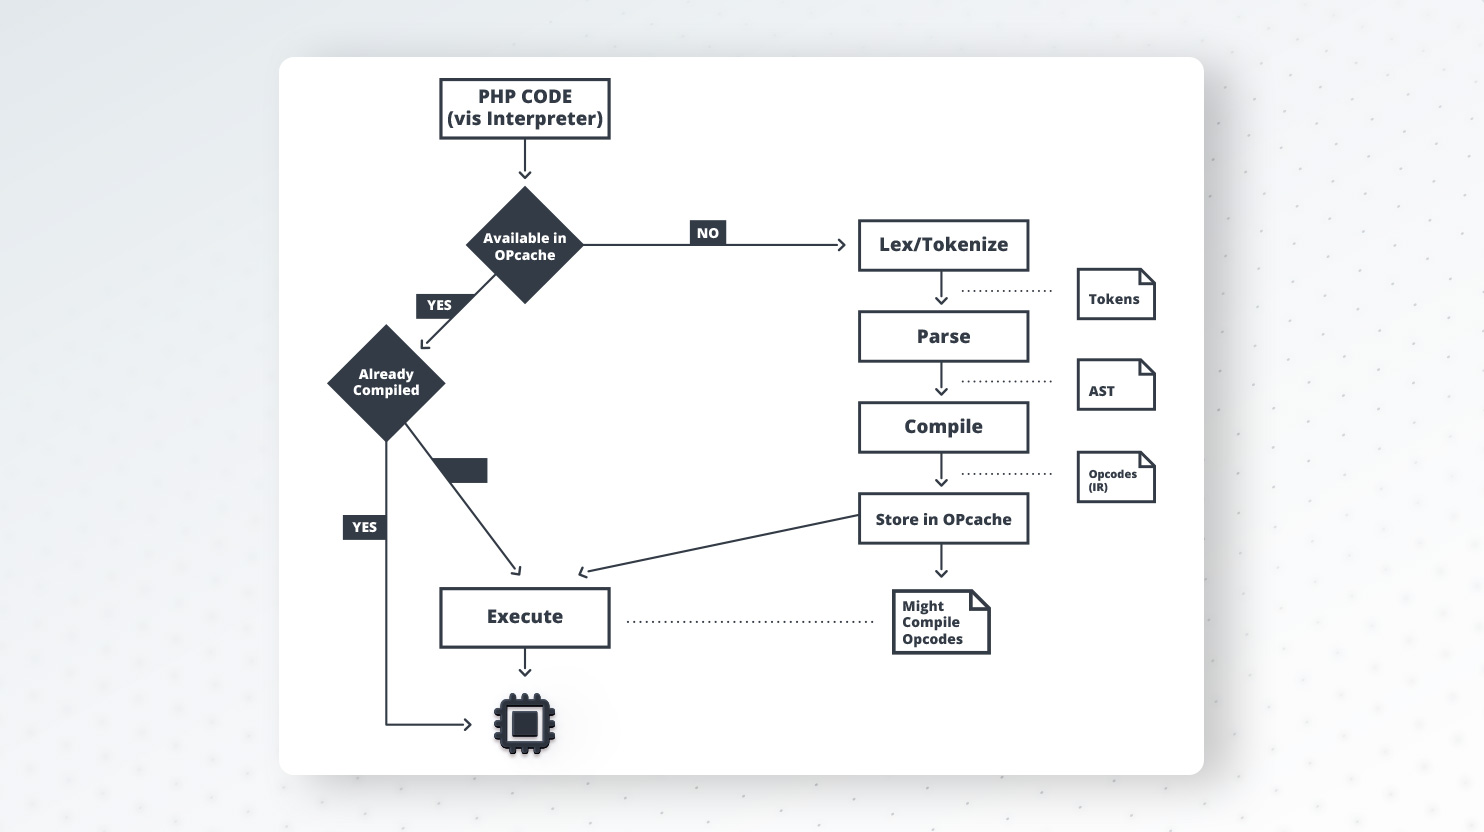 PHP source code execution stages